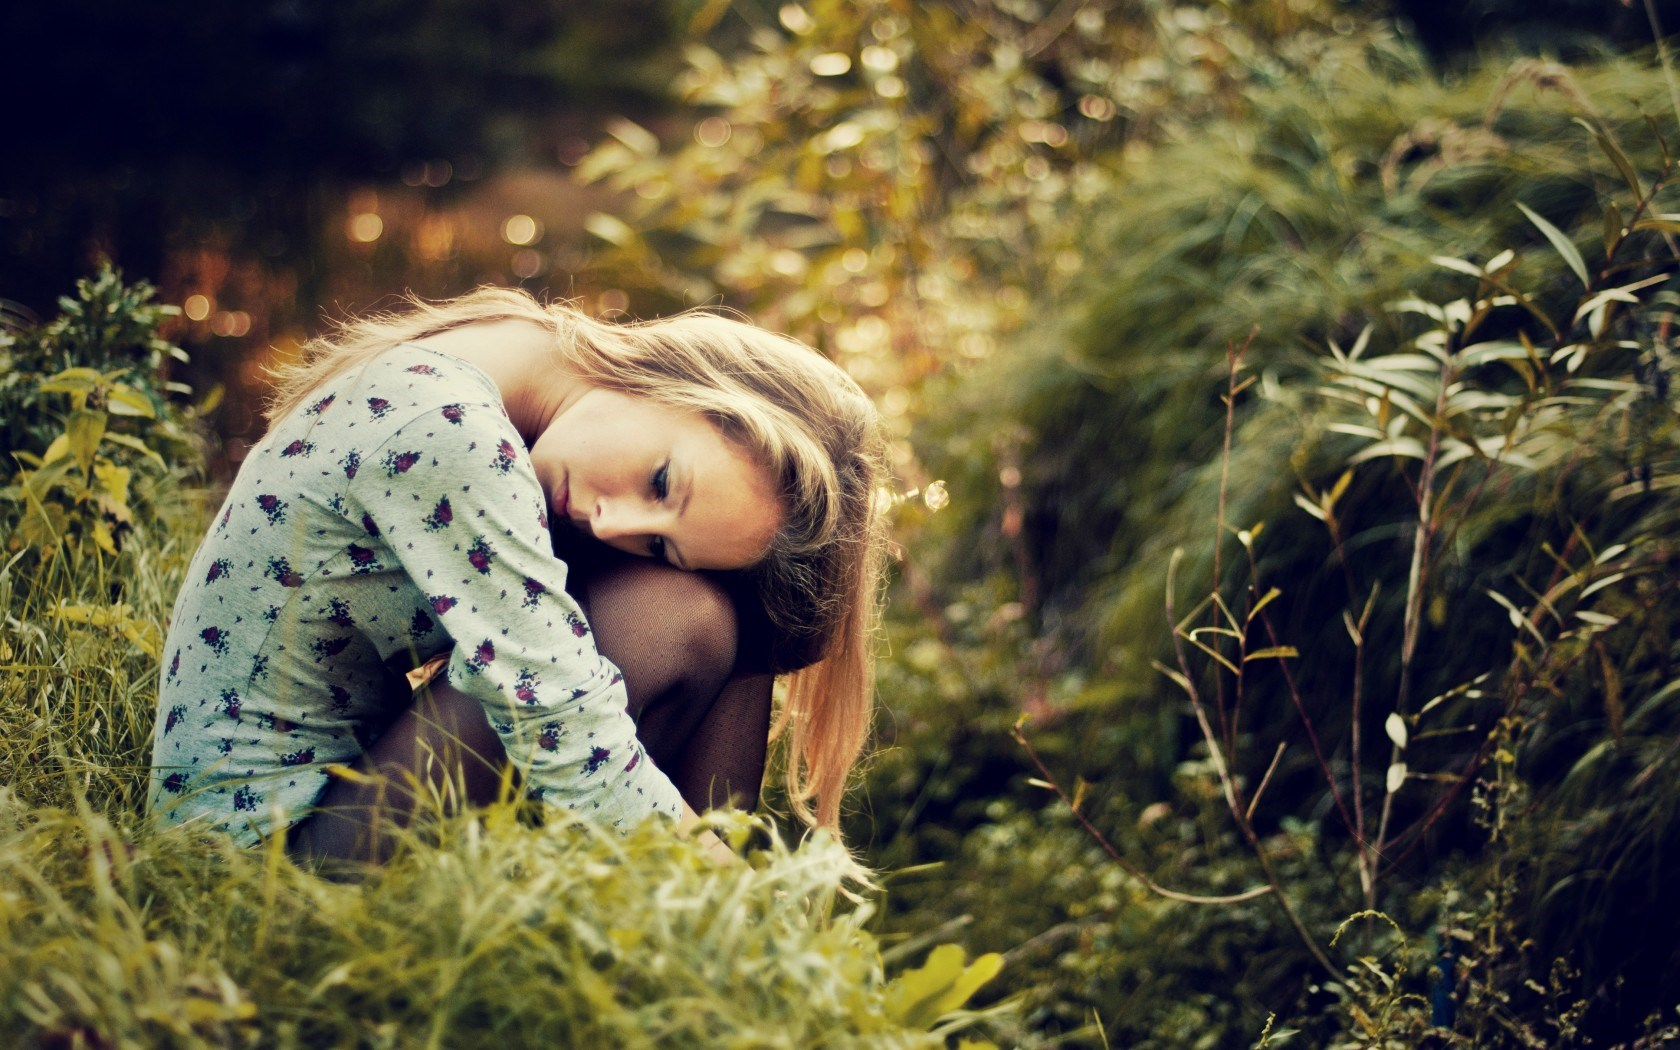 Alone Sad Girls Wallpapers Images Photos Hd 1680x1050